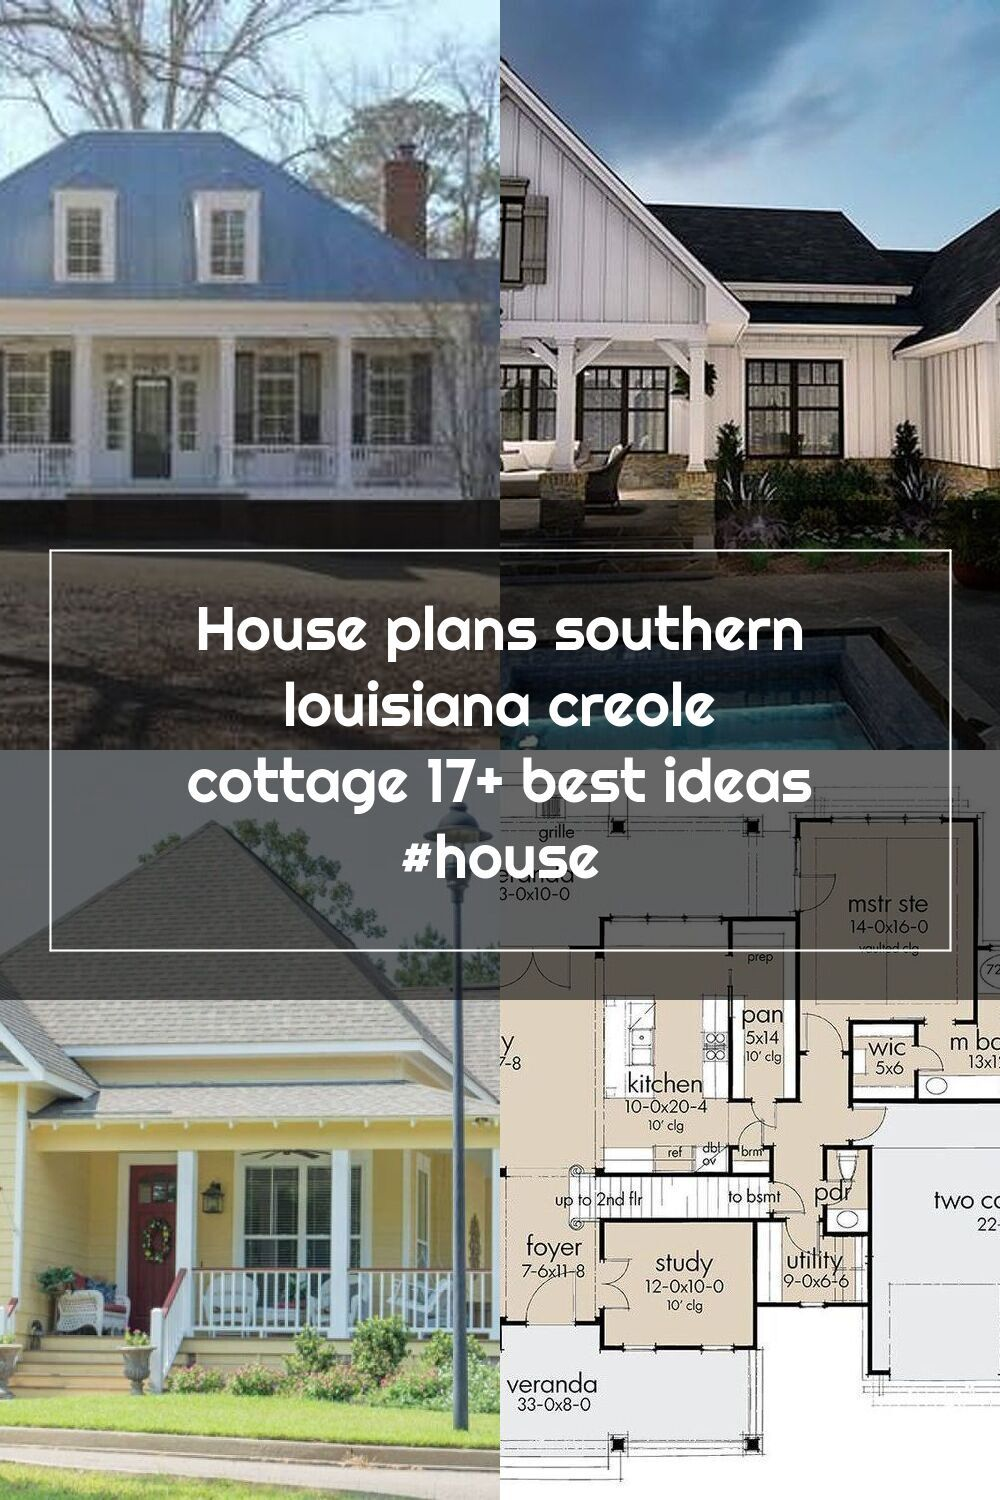 House Plans Southern Louisiana Creole Cottage 17 Best Ideas House Southern House Plans Creole Cottage House Plans